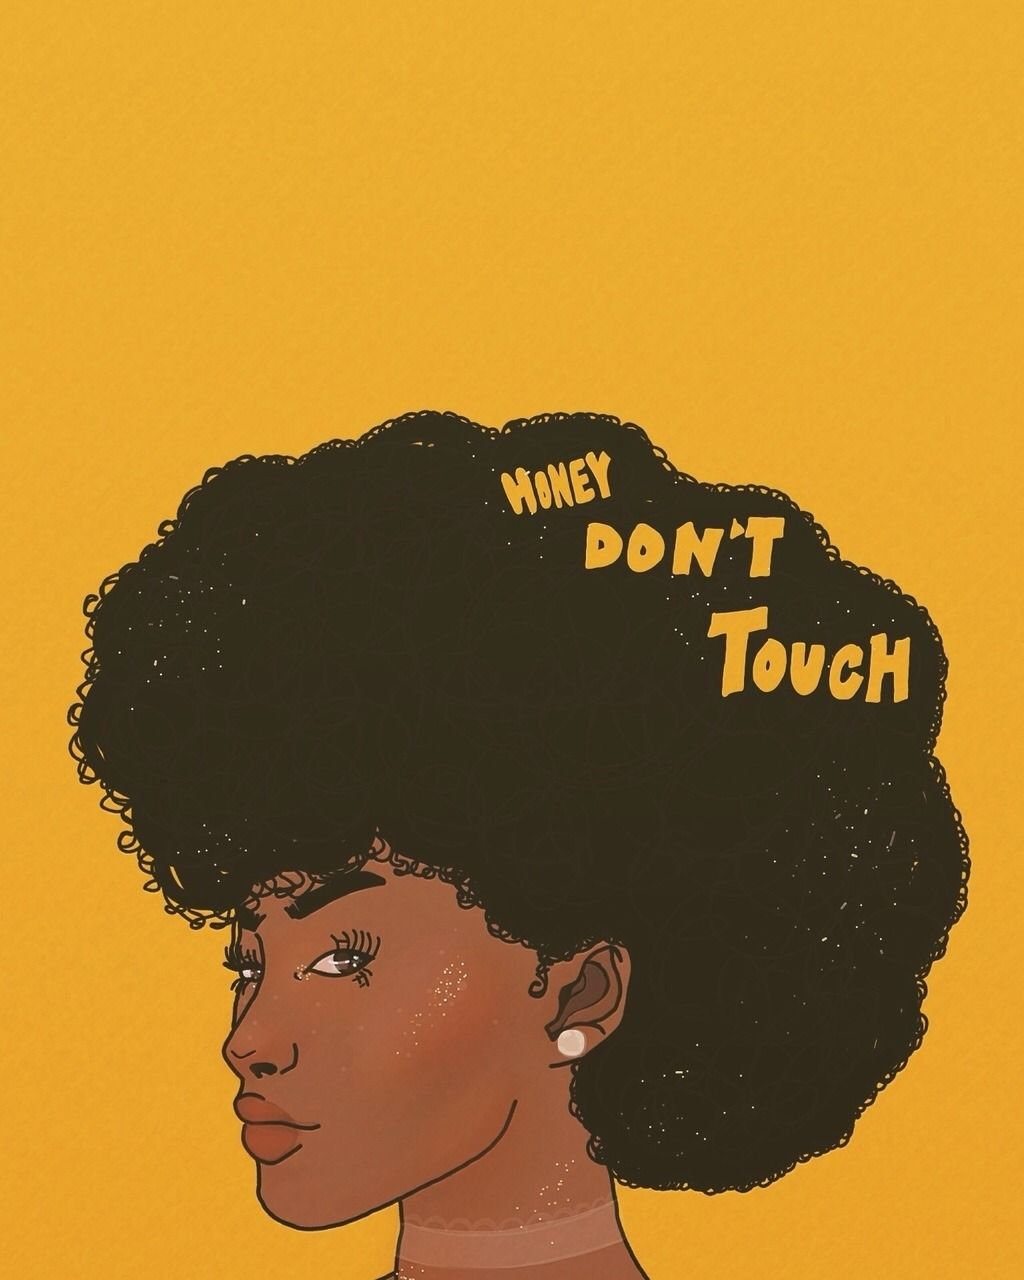 Pin By Claire On Aesthetic In 2019 Pinterest Black Girl Art